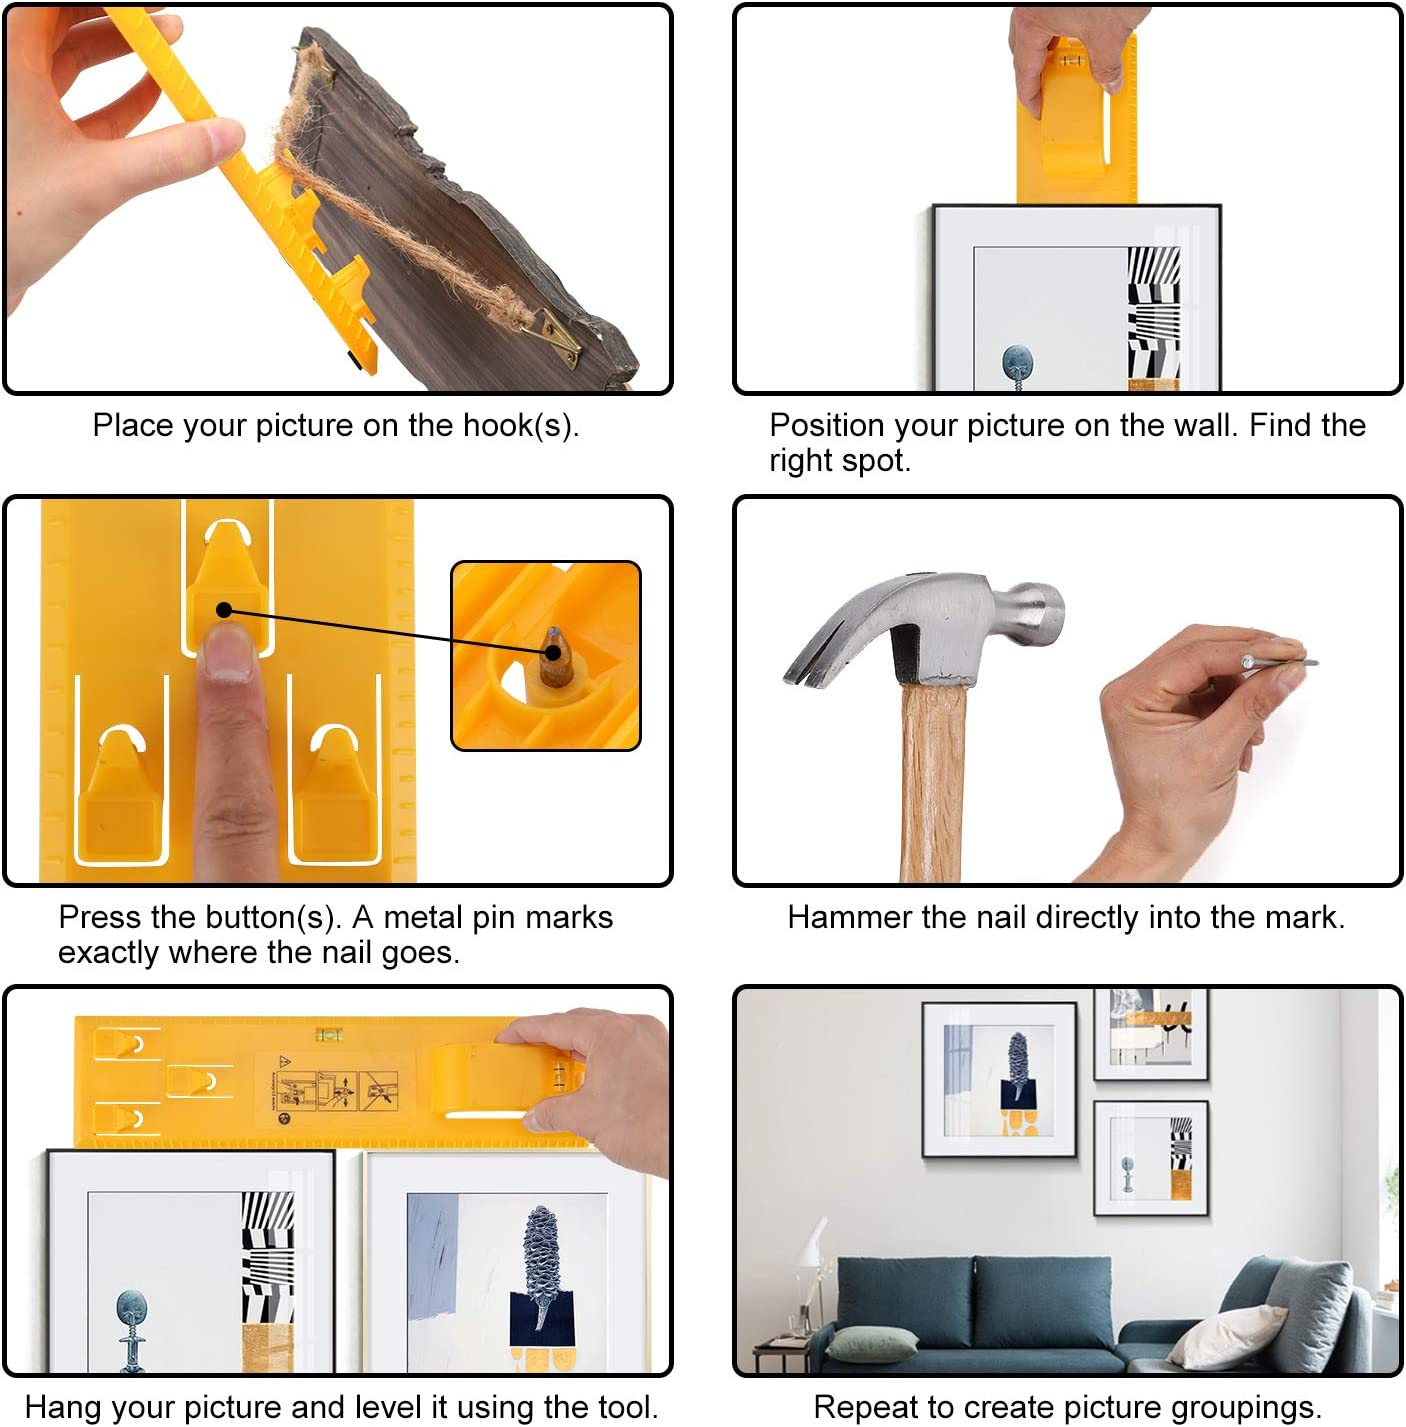 Upgraded Yellow Picture Hanging Tool Picture Frame Hanger Tools with Level Multifunctional Level Ruler for Hanging Pictures Artwork and Socket Clocks Mirrors